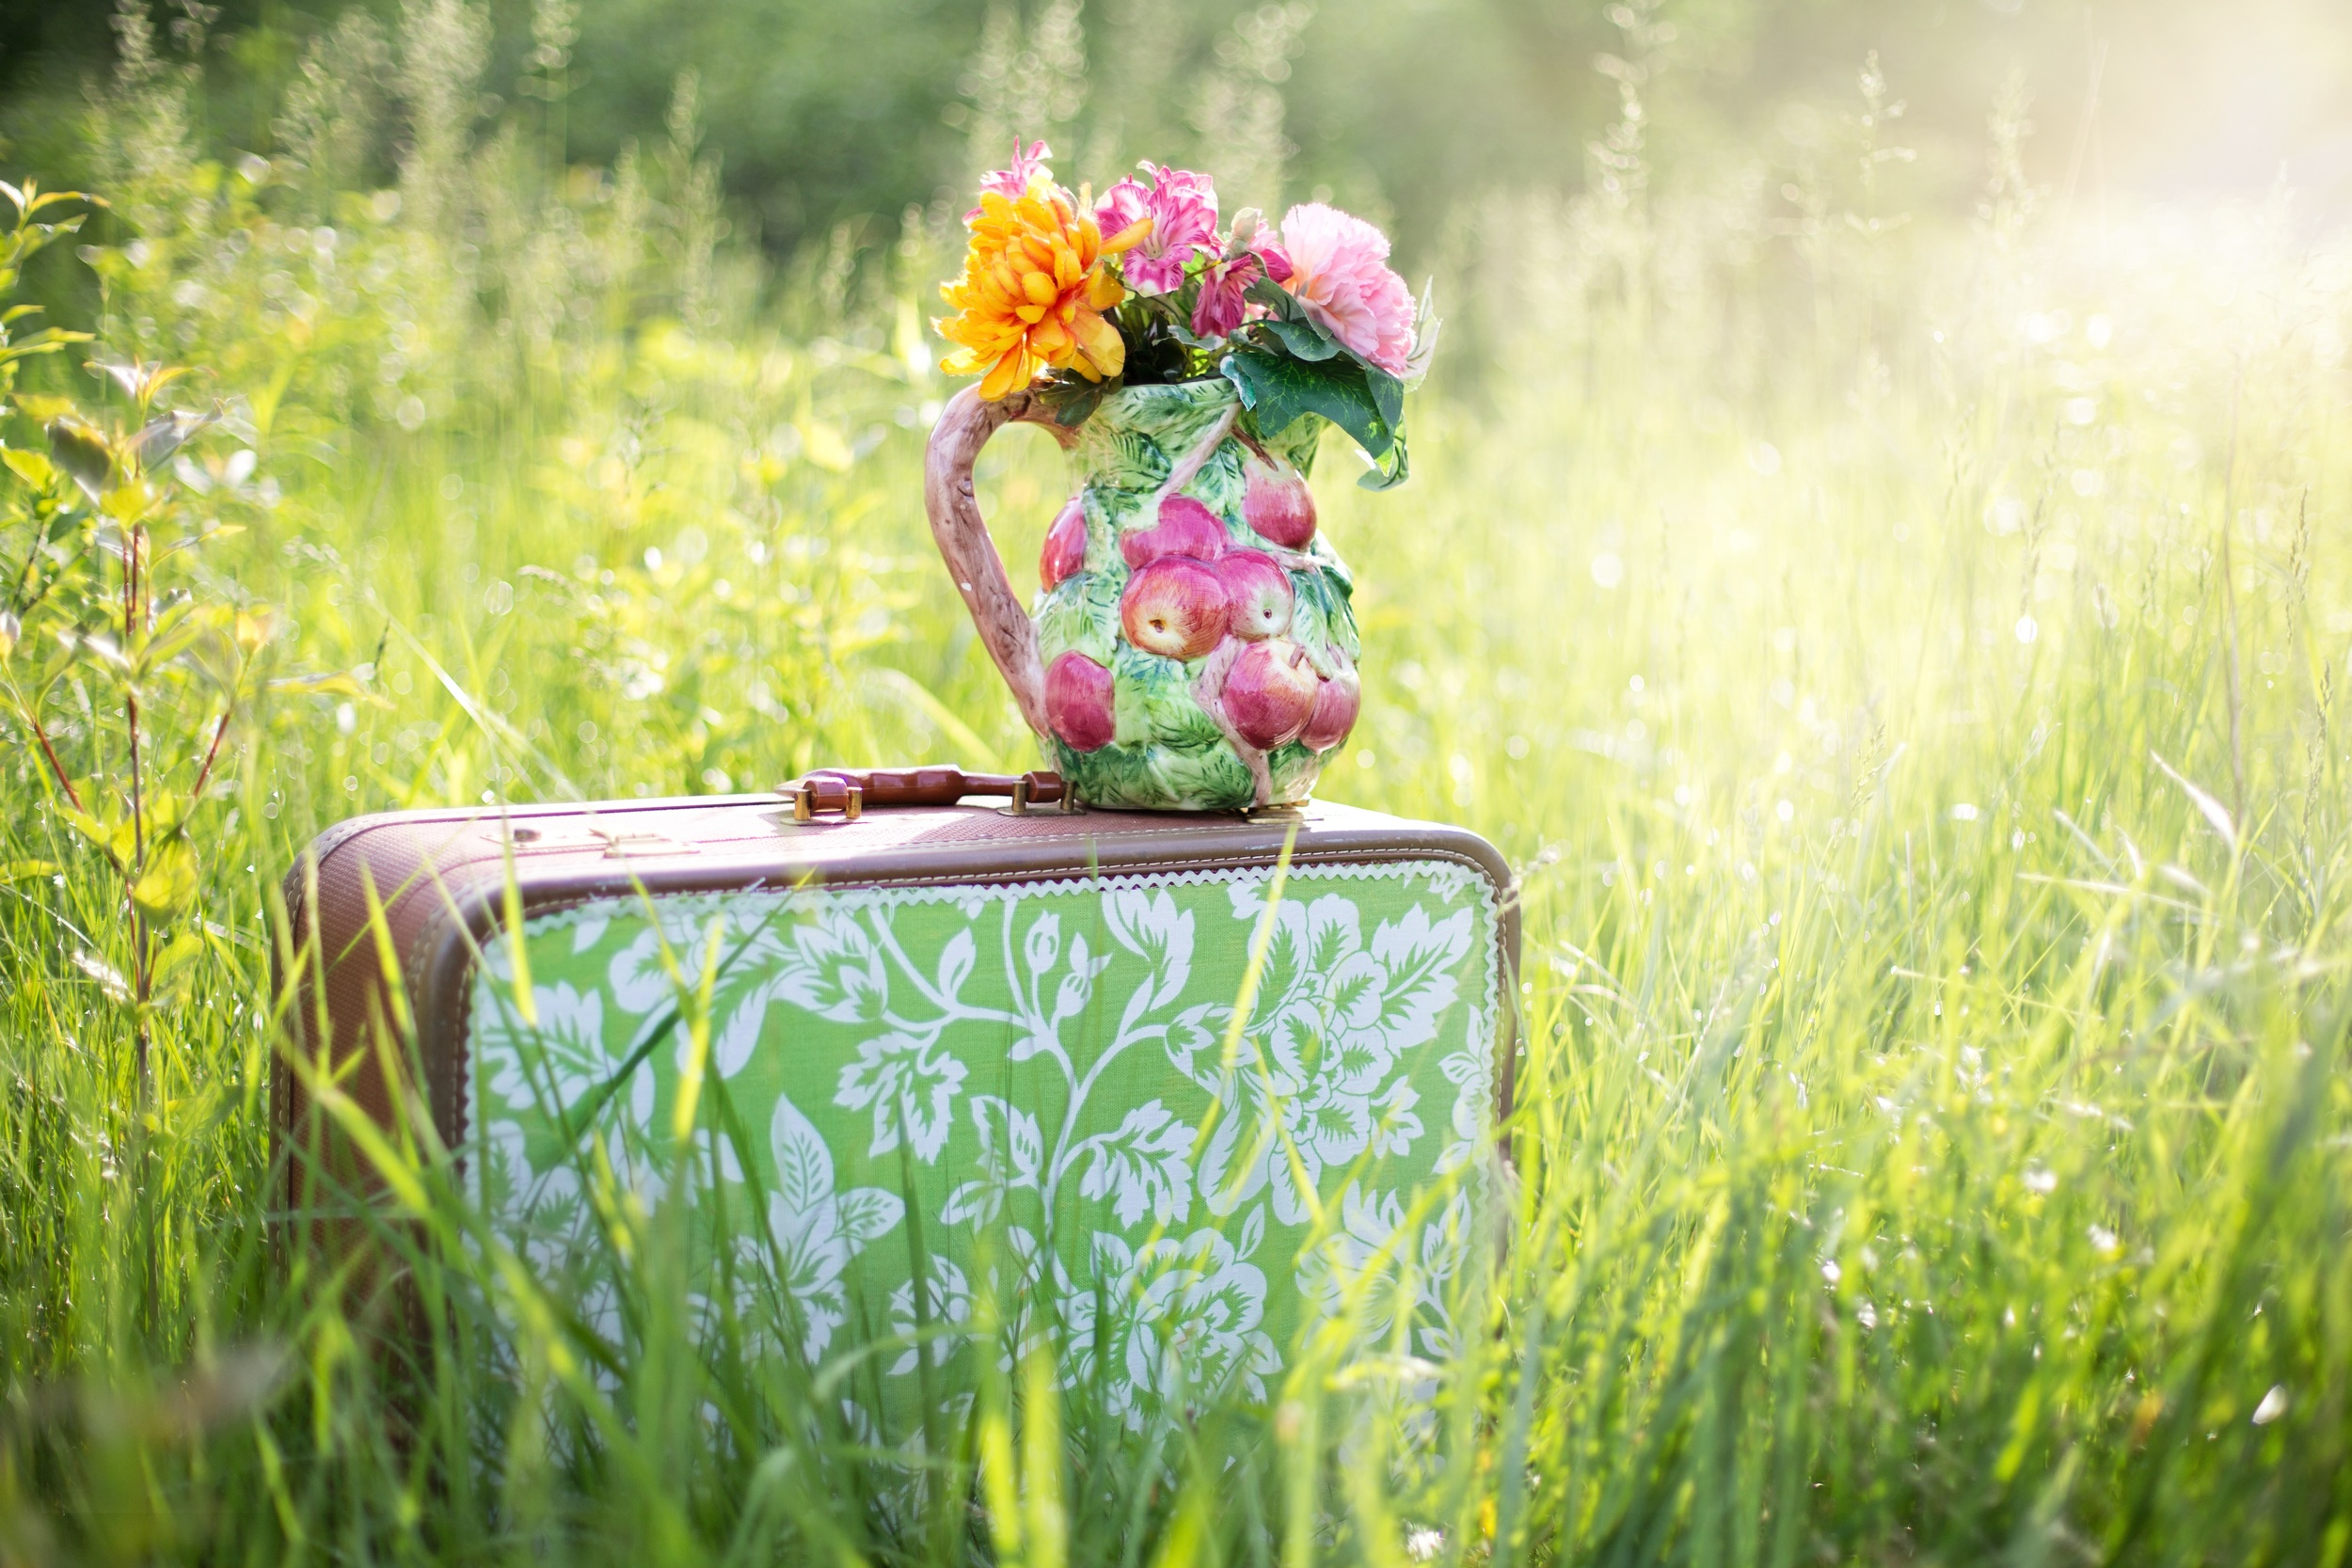 suitcase in a field of grass with a jug of flowers on top